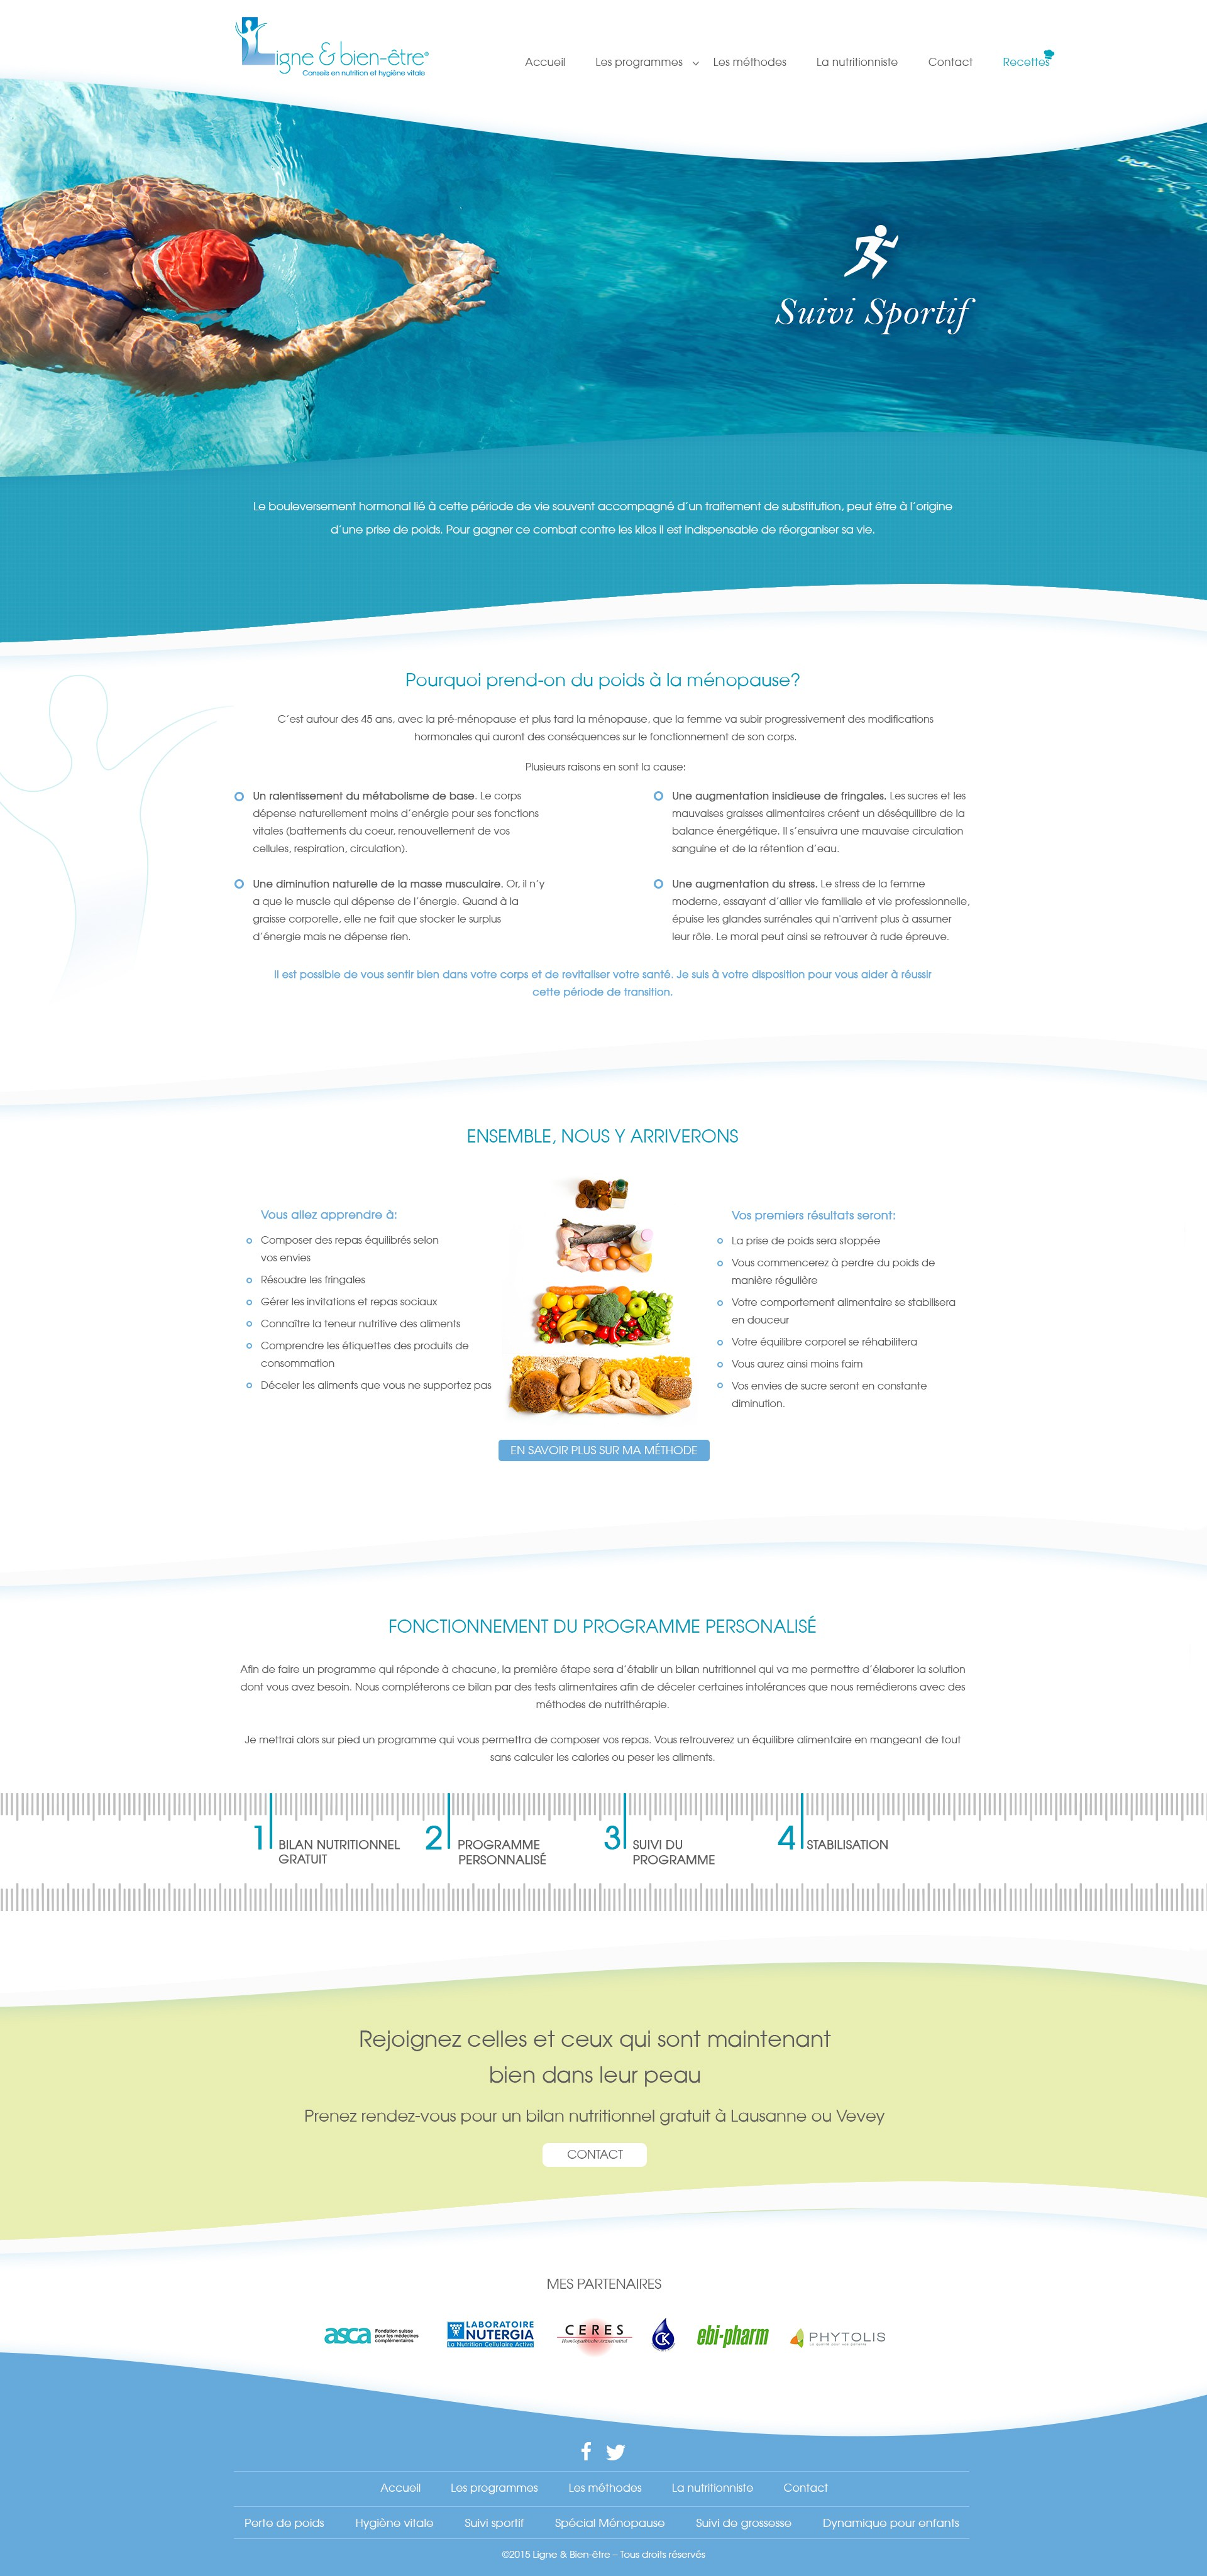 5 header images to find for 5 nutritional programs